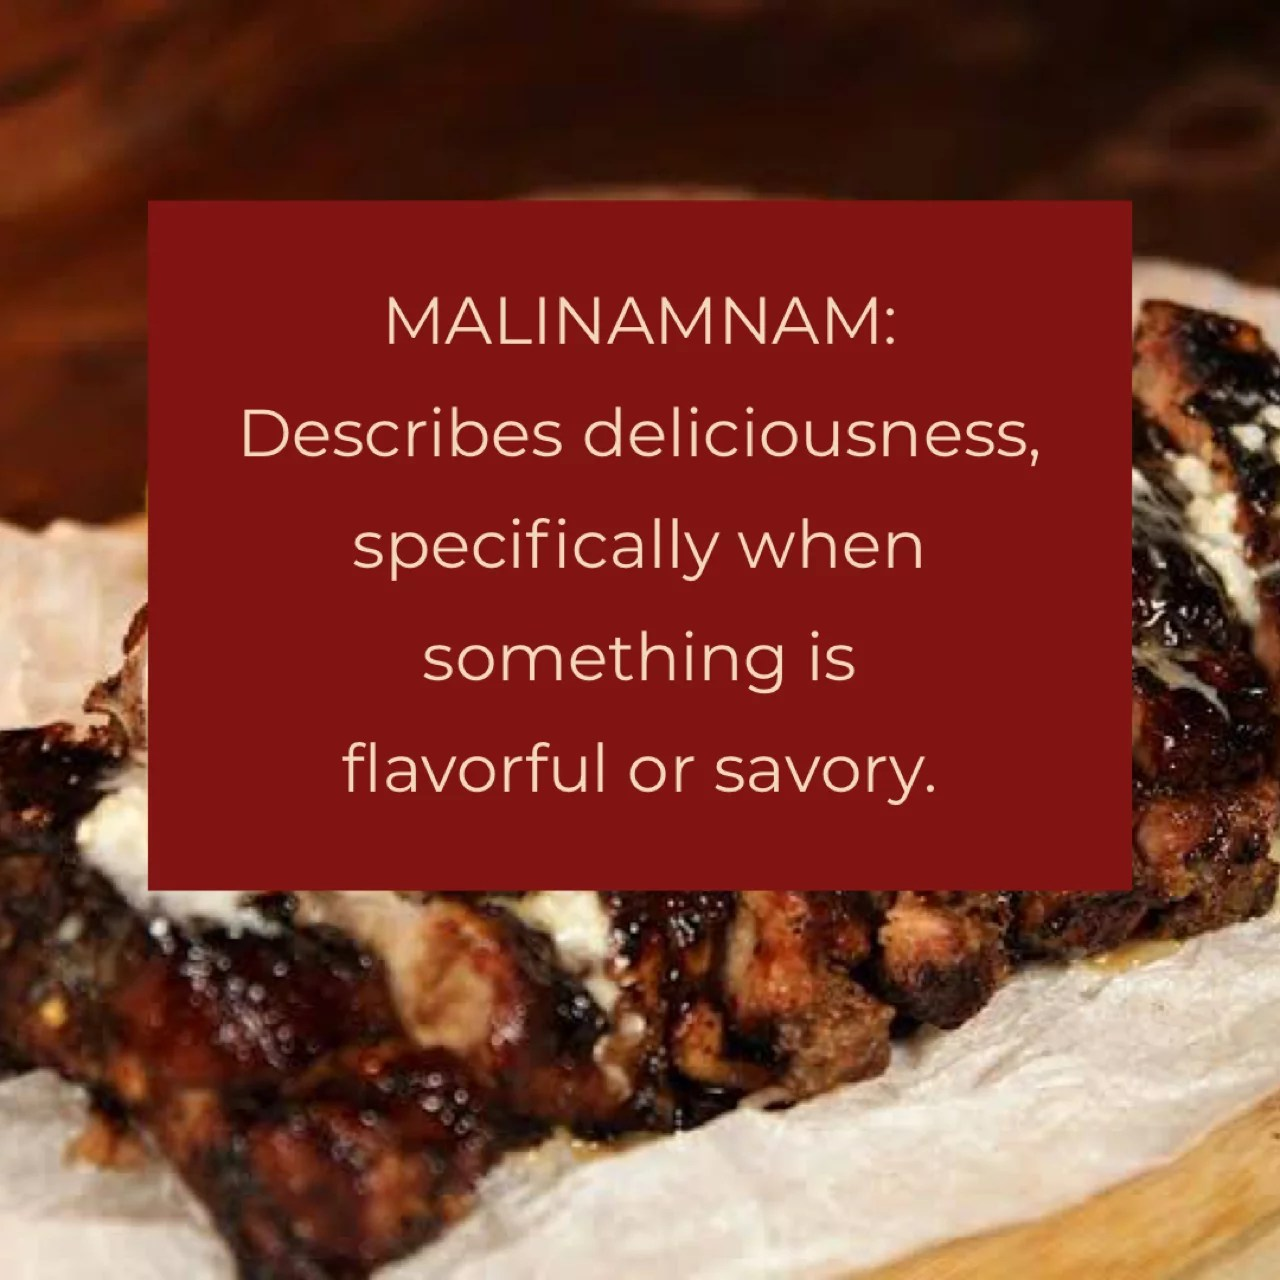 Malinamnam: Describes deliciousness, specifically when something is flavorful or savory